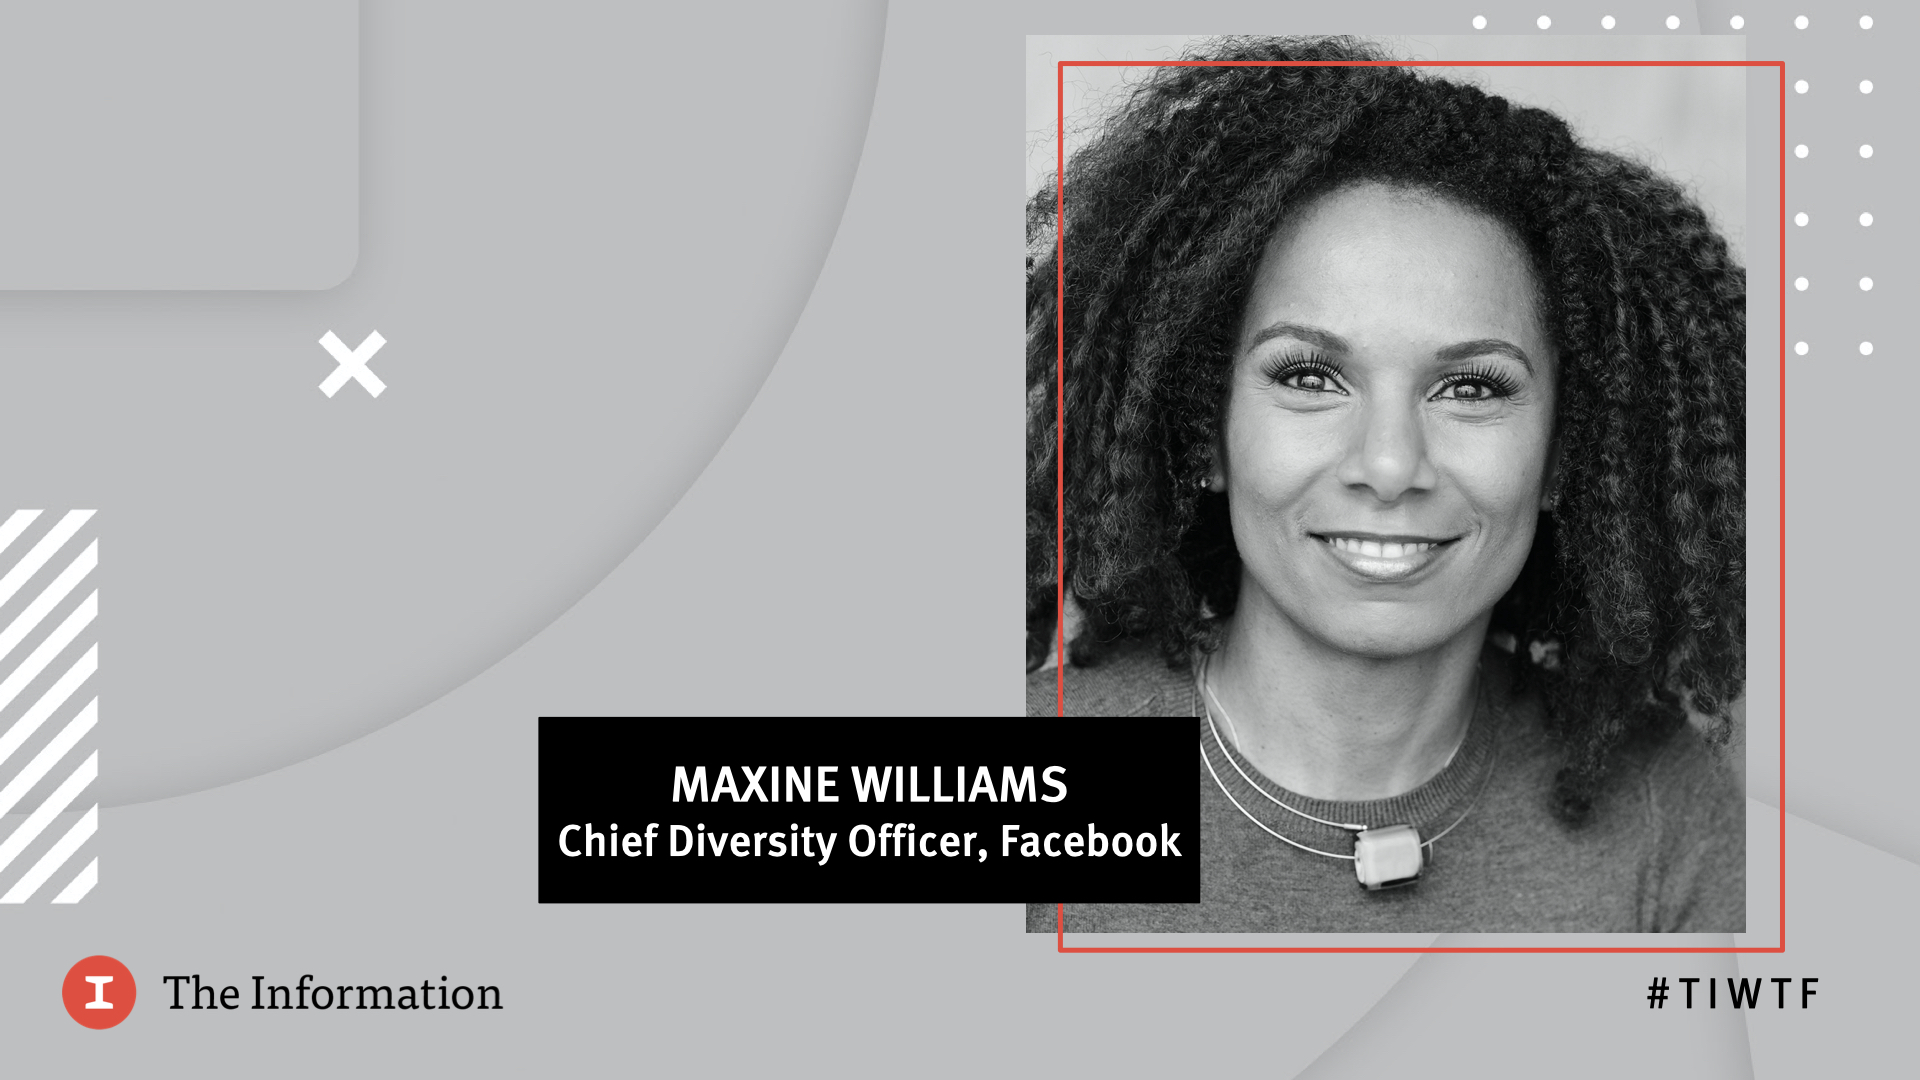 WTF 2020 - Facebook's Chief Diversity Officer Maxine Williams in conversation with Jessica Toonkel, reporter at The Information